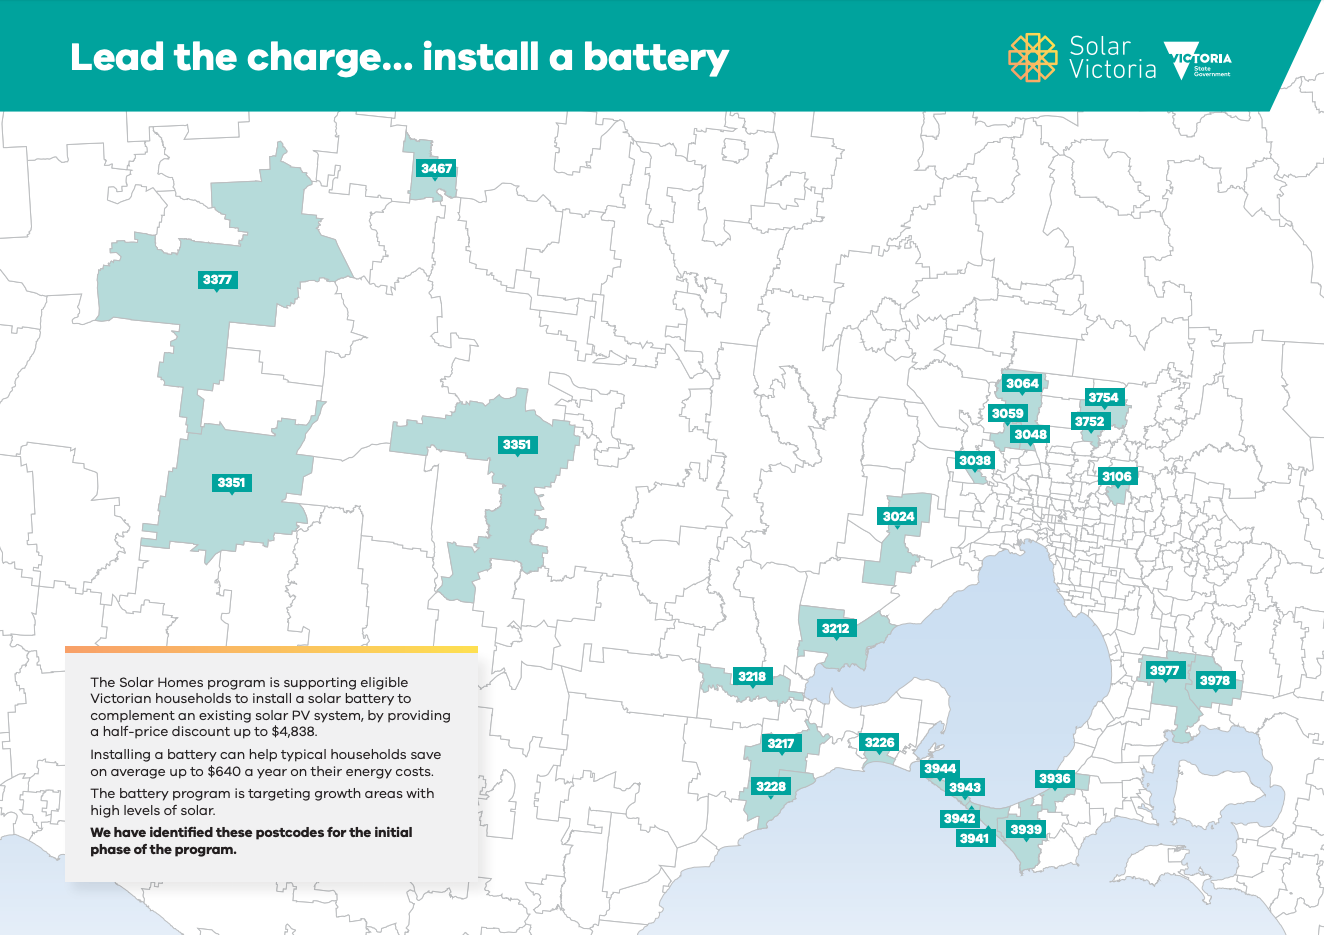 Map of postcodes eligible for the Solar Homes battery storage incentive in the first year.